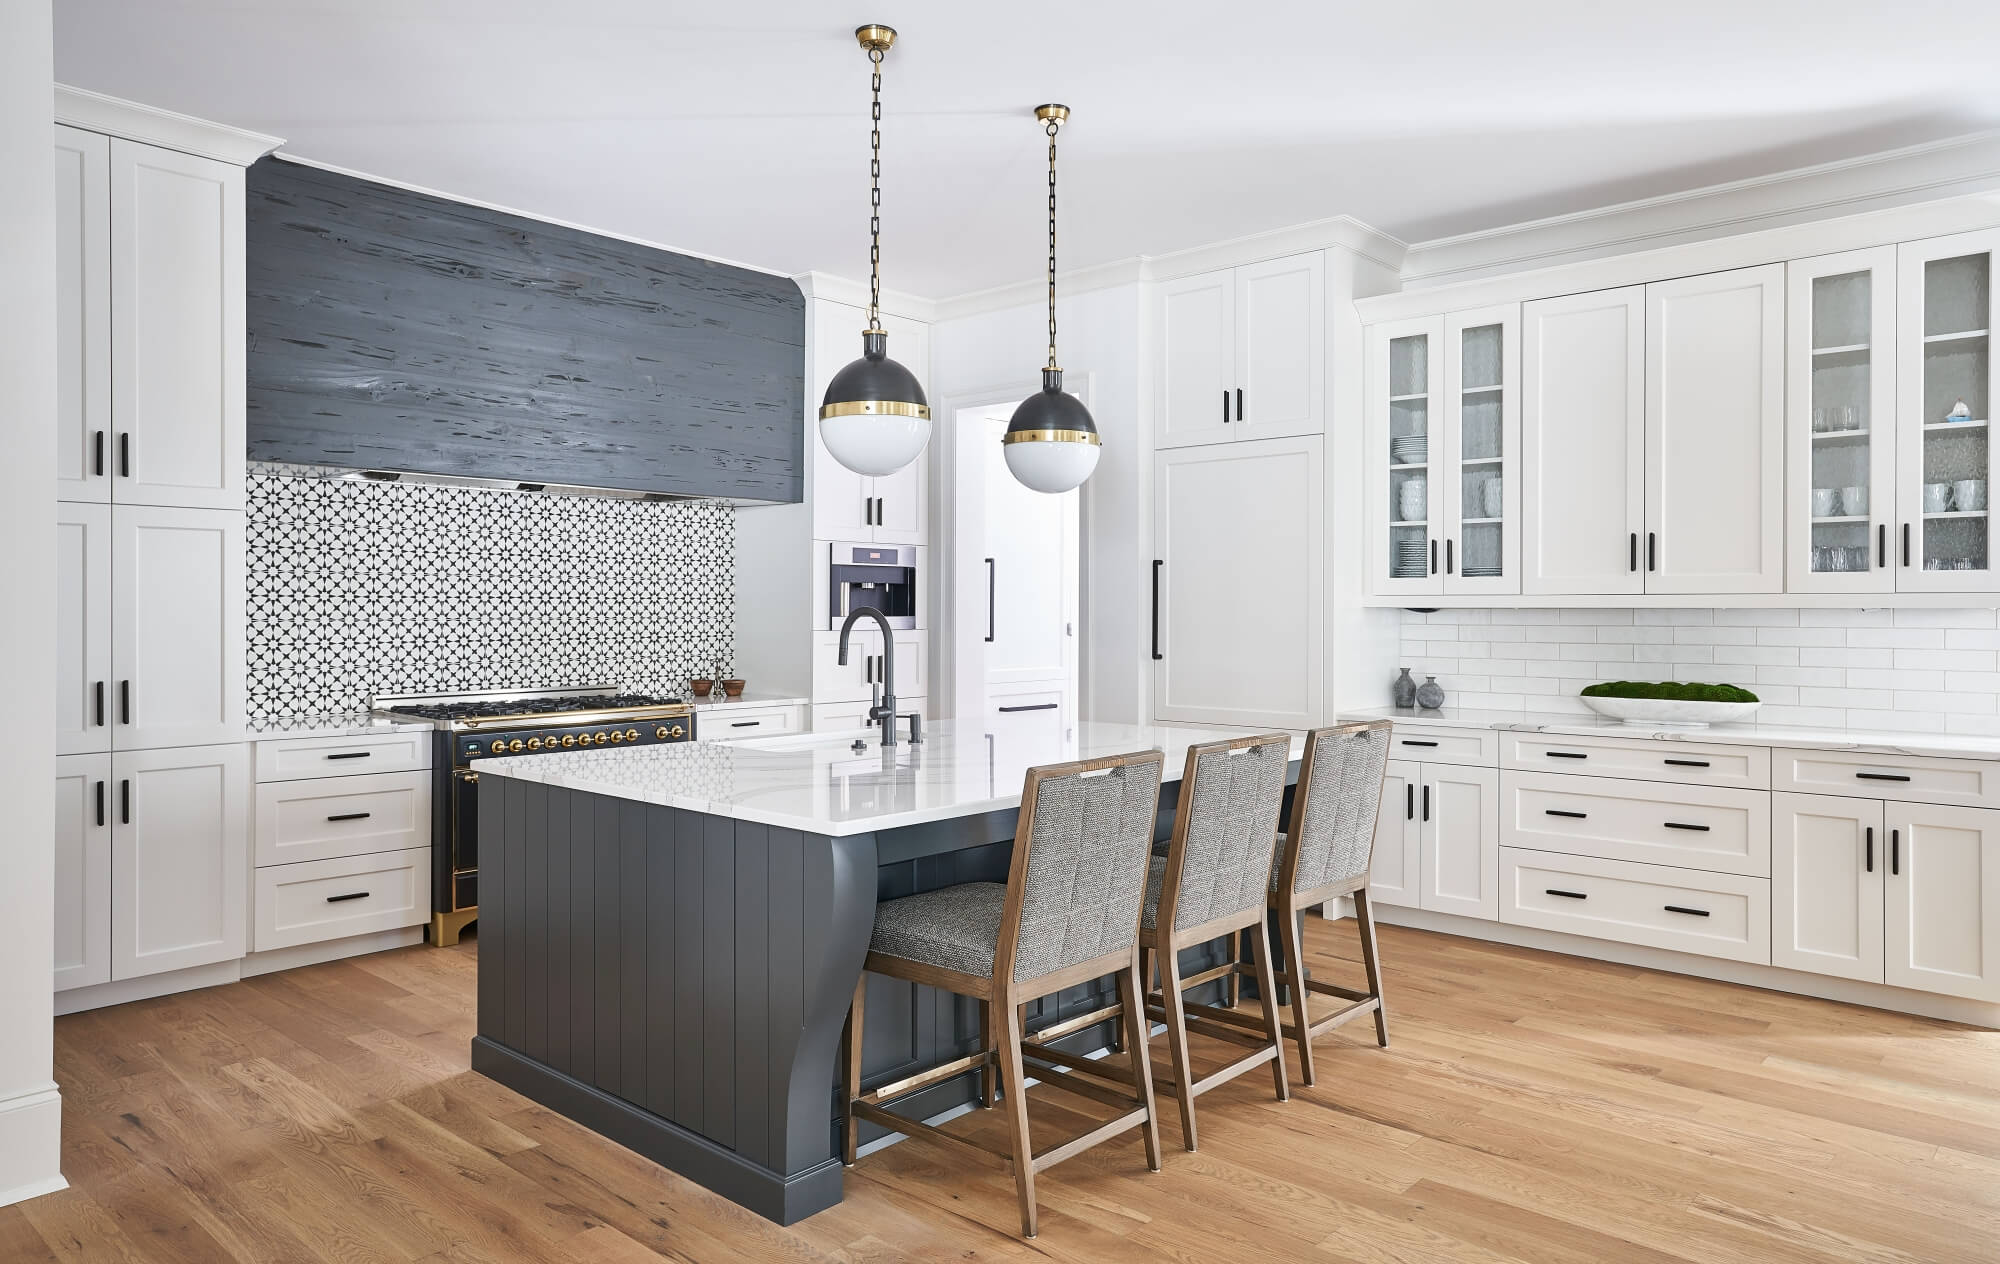 Beautiful light kitchen with natural wood flooring, white cabinets, and grey island and range hood.